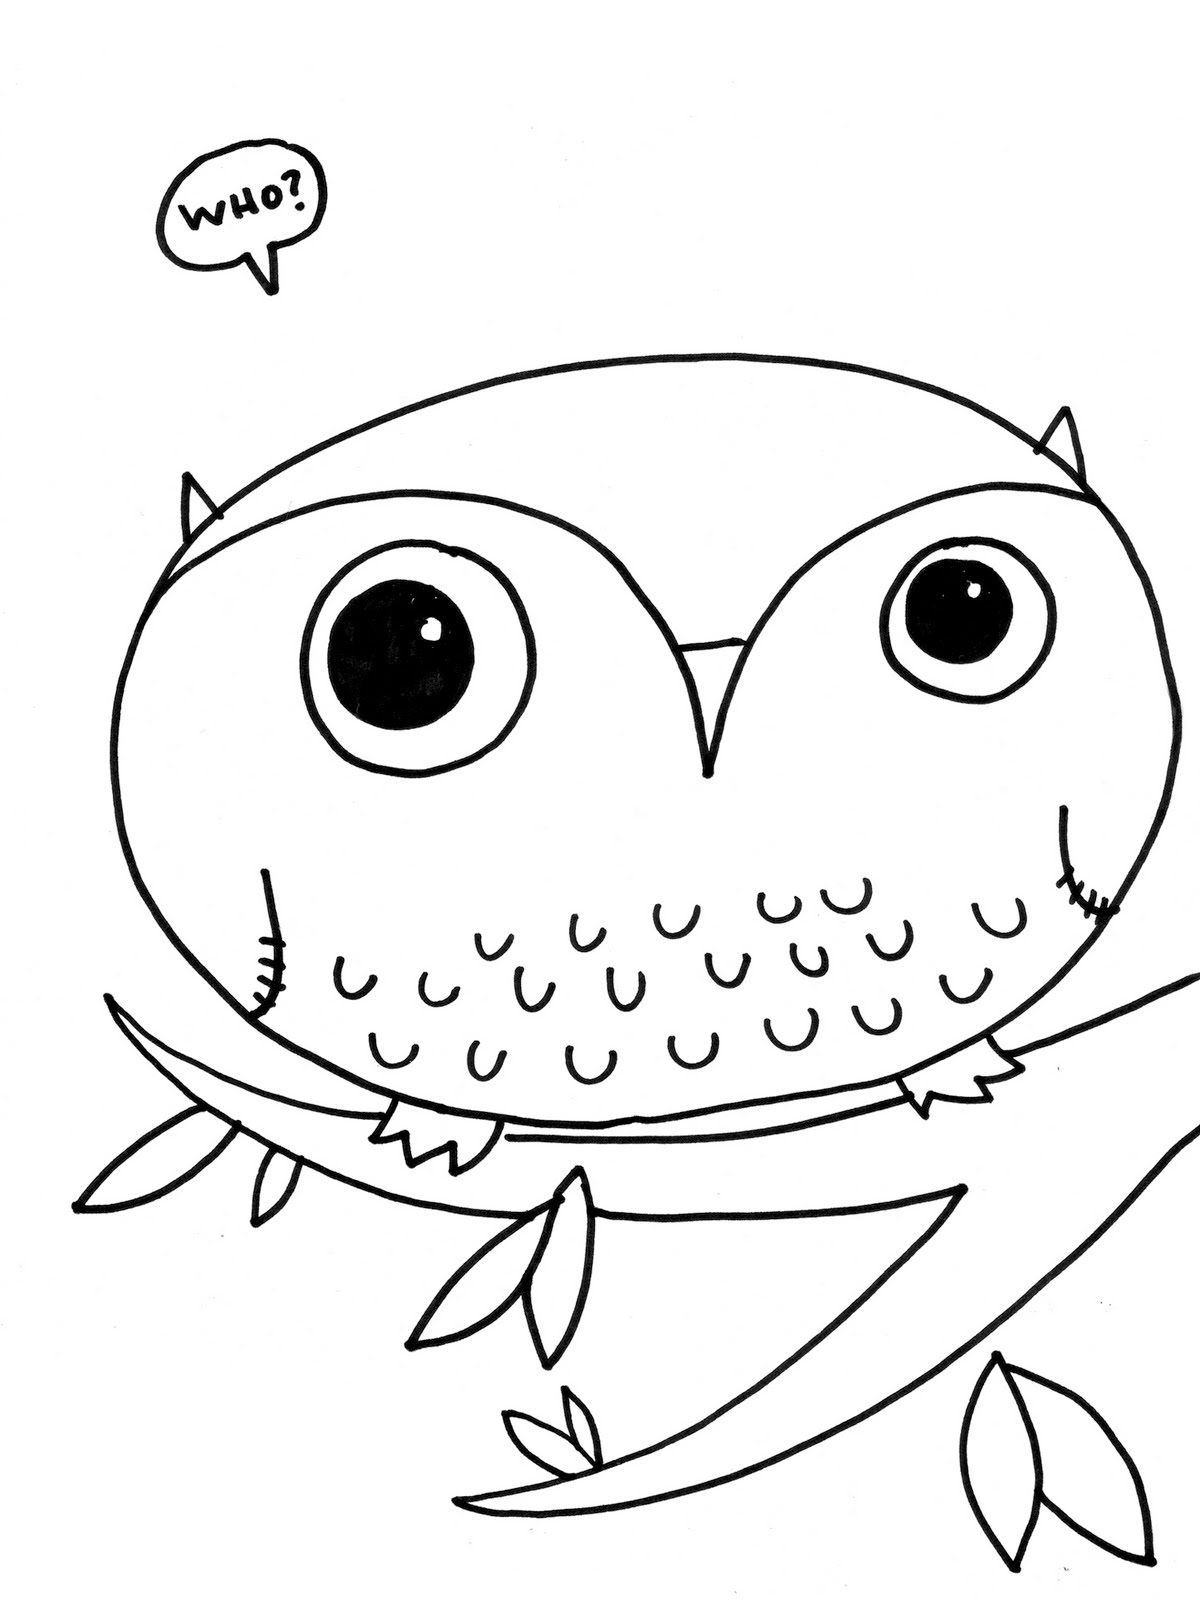 free coloring pages downloads - photo#32